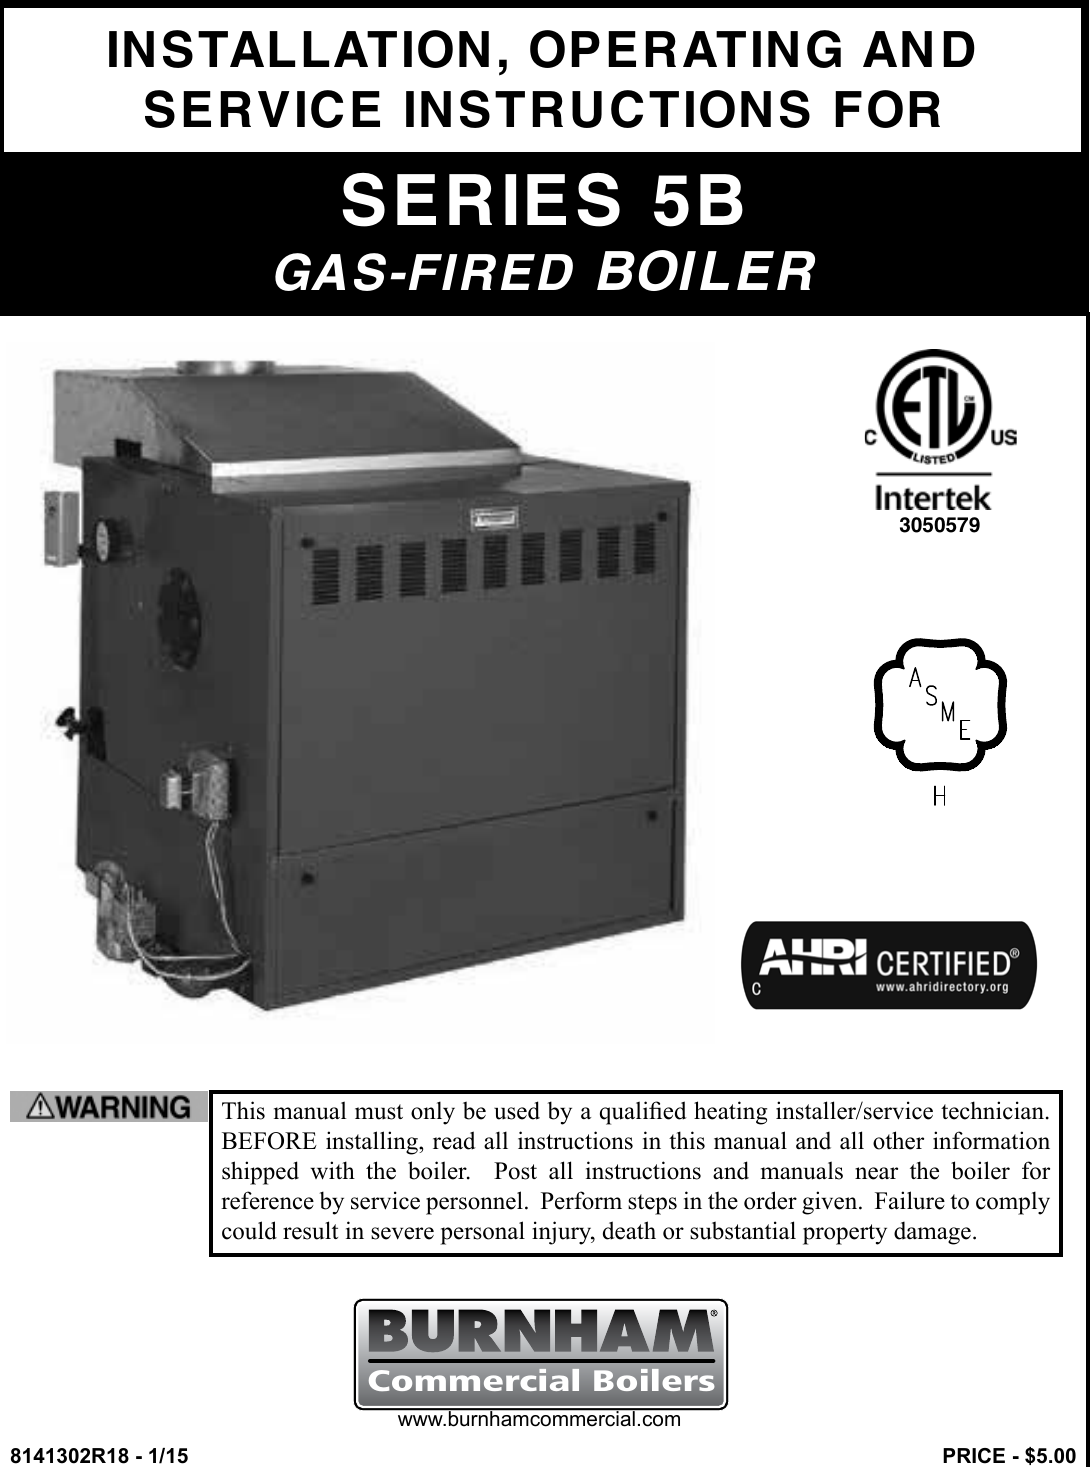 Burnham Series 5b Boiler Installation Operating Instructions Wiring Diagram